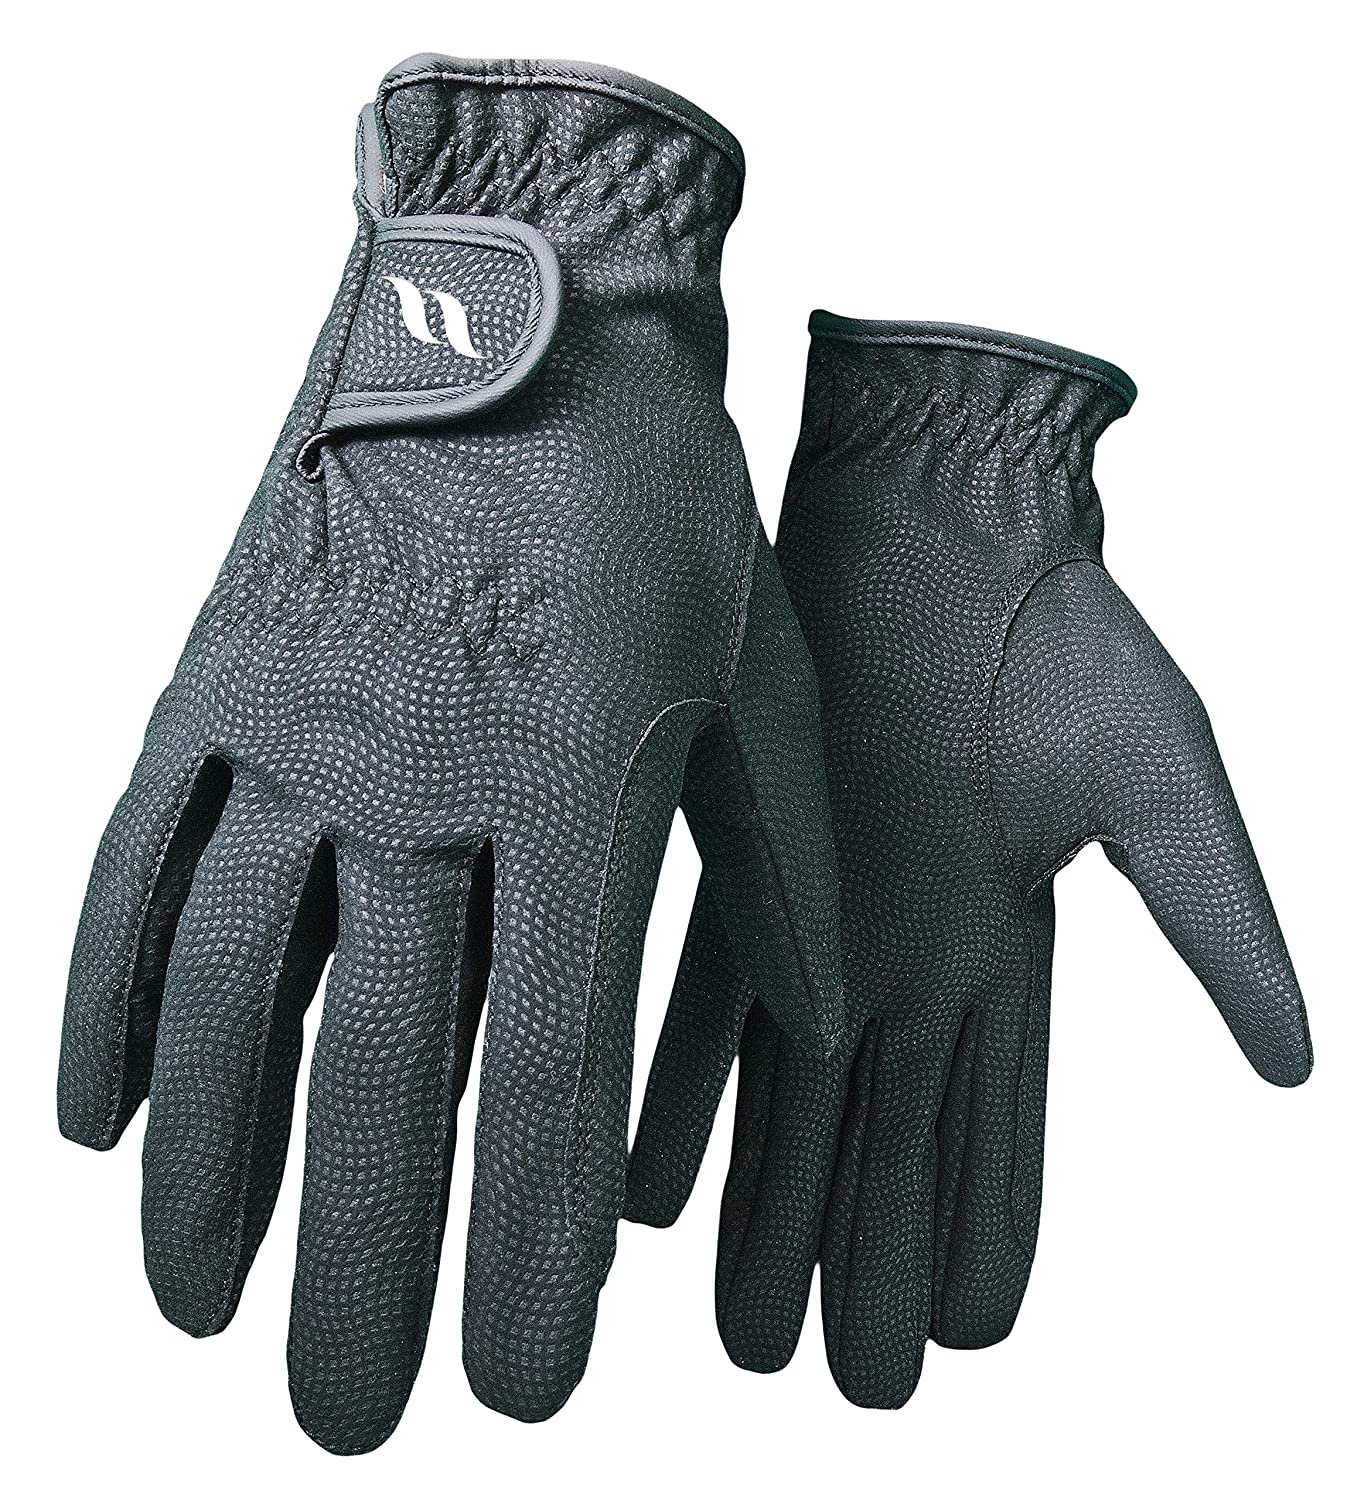 【NEW限定品】 Back ブラック On Track Track Riding Gloves B00FON78E4 ブラック Gloves 10.5, 田野町:11a13858 --- svecha37.ru